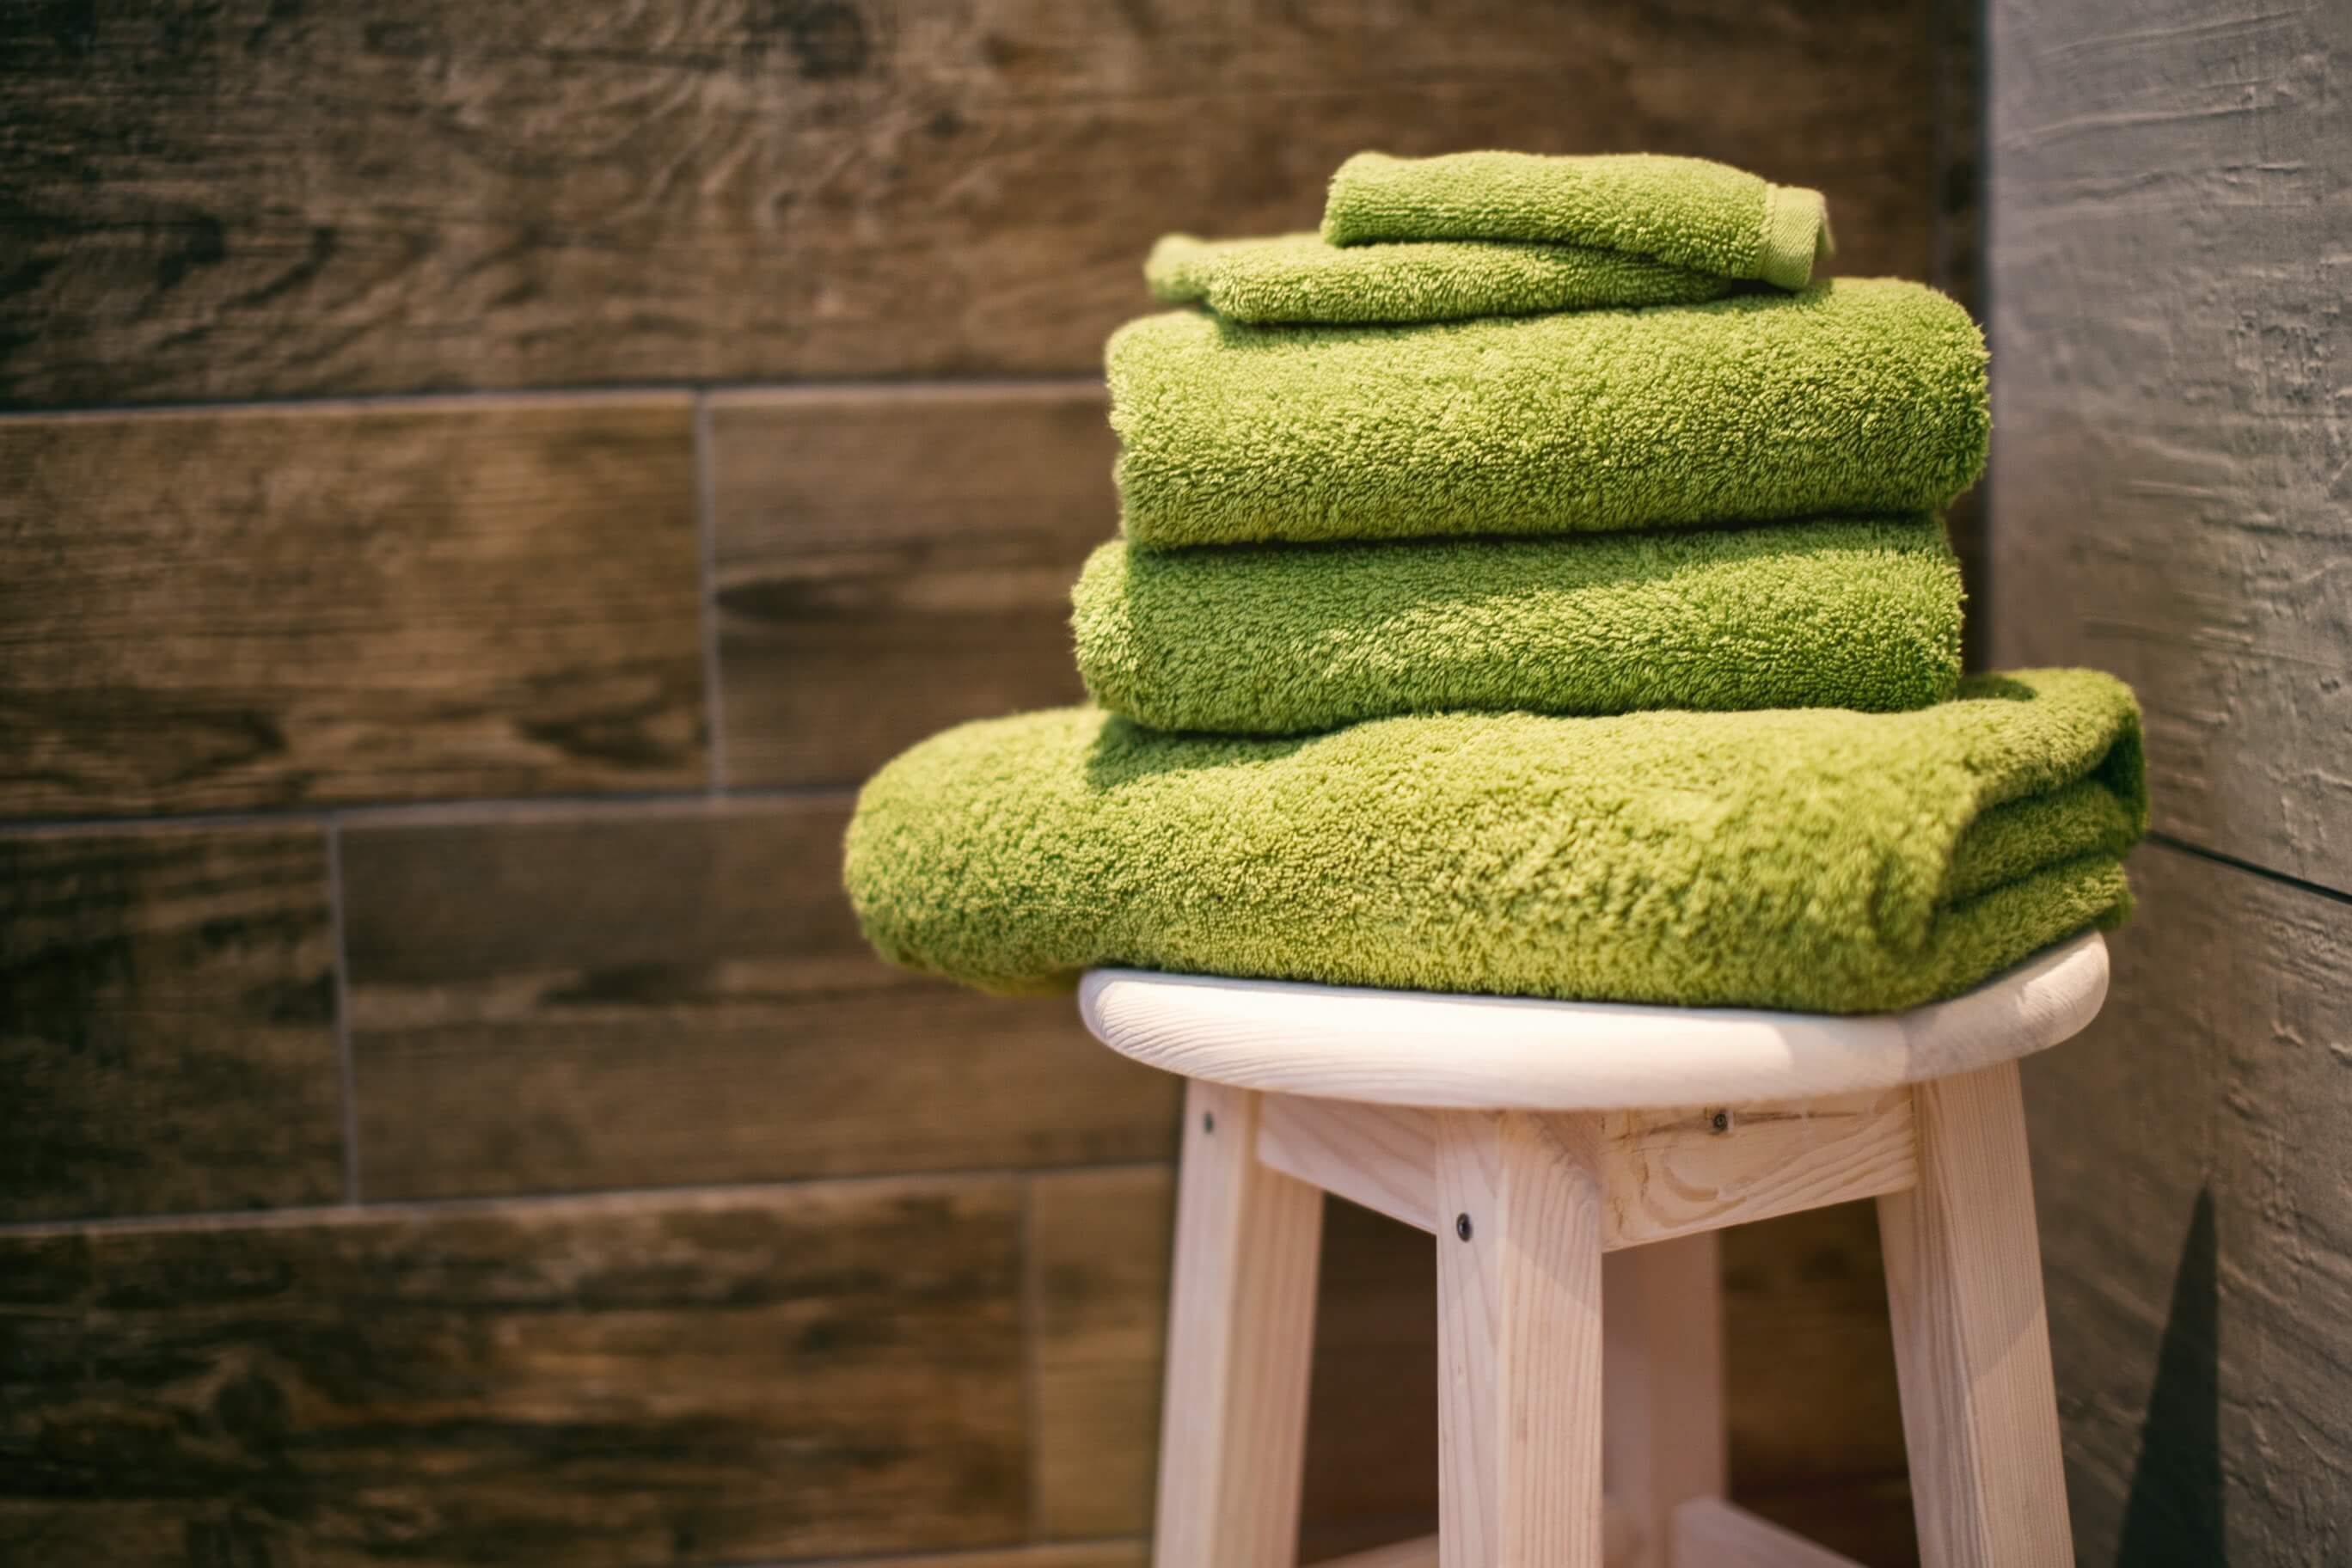 Stack of towels on a stool.